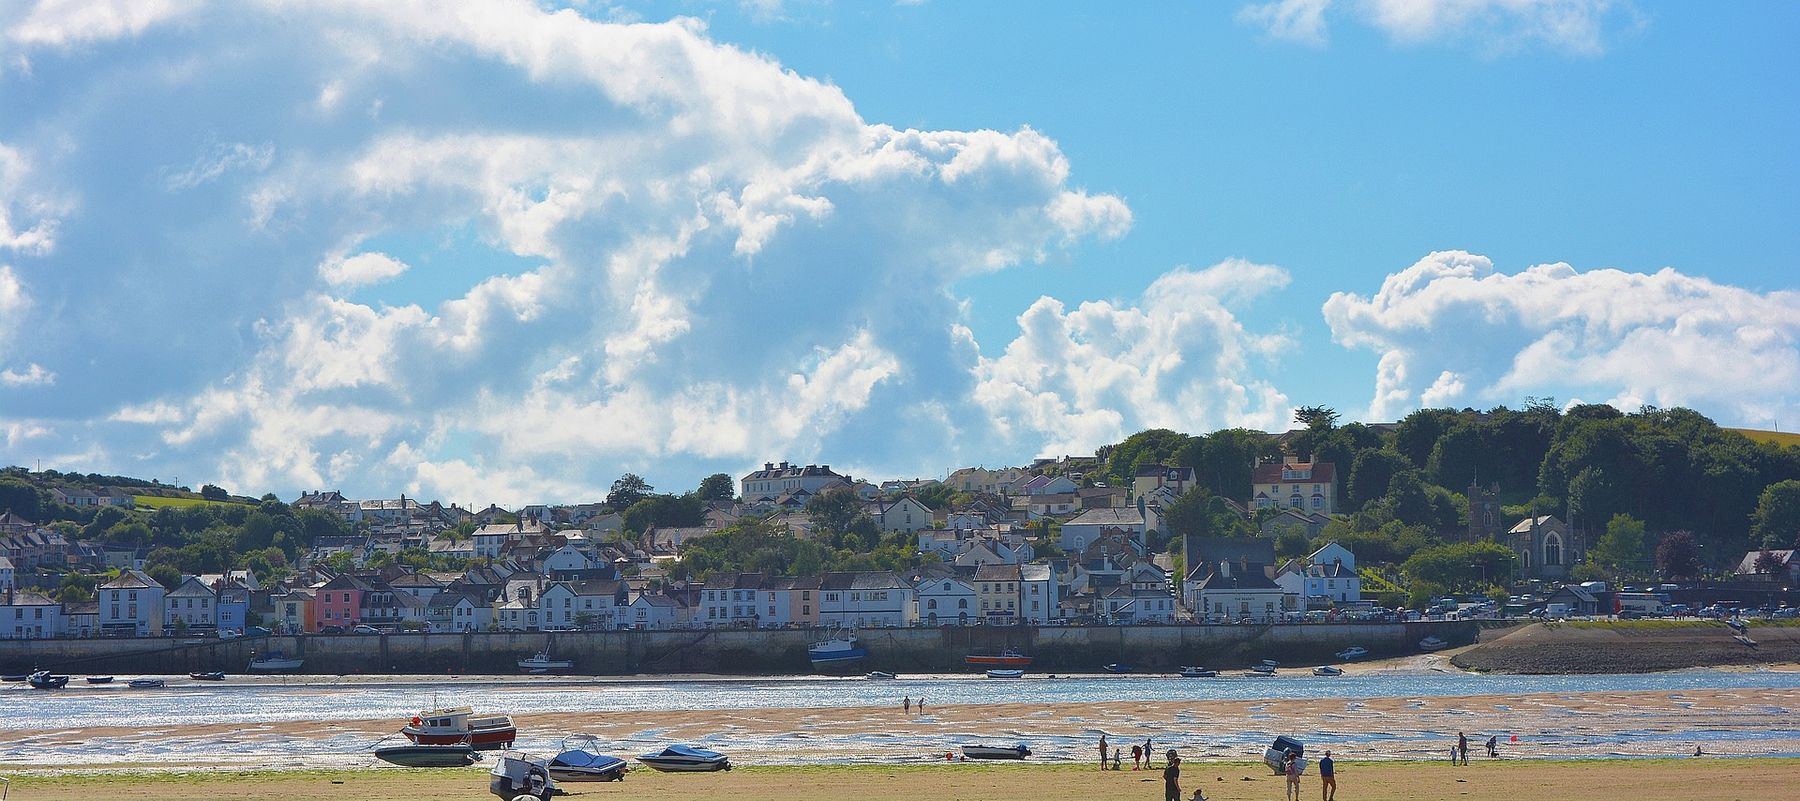 Appledore, one of the best coastal villages in England